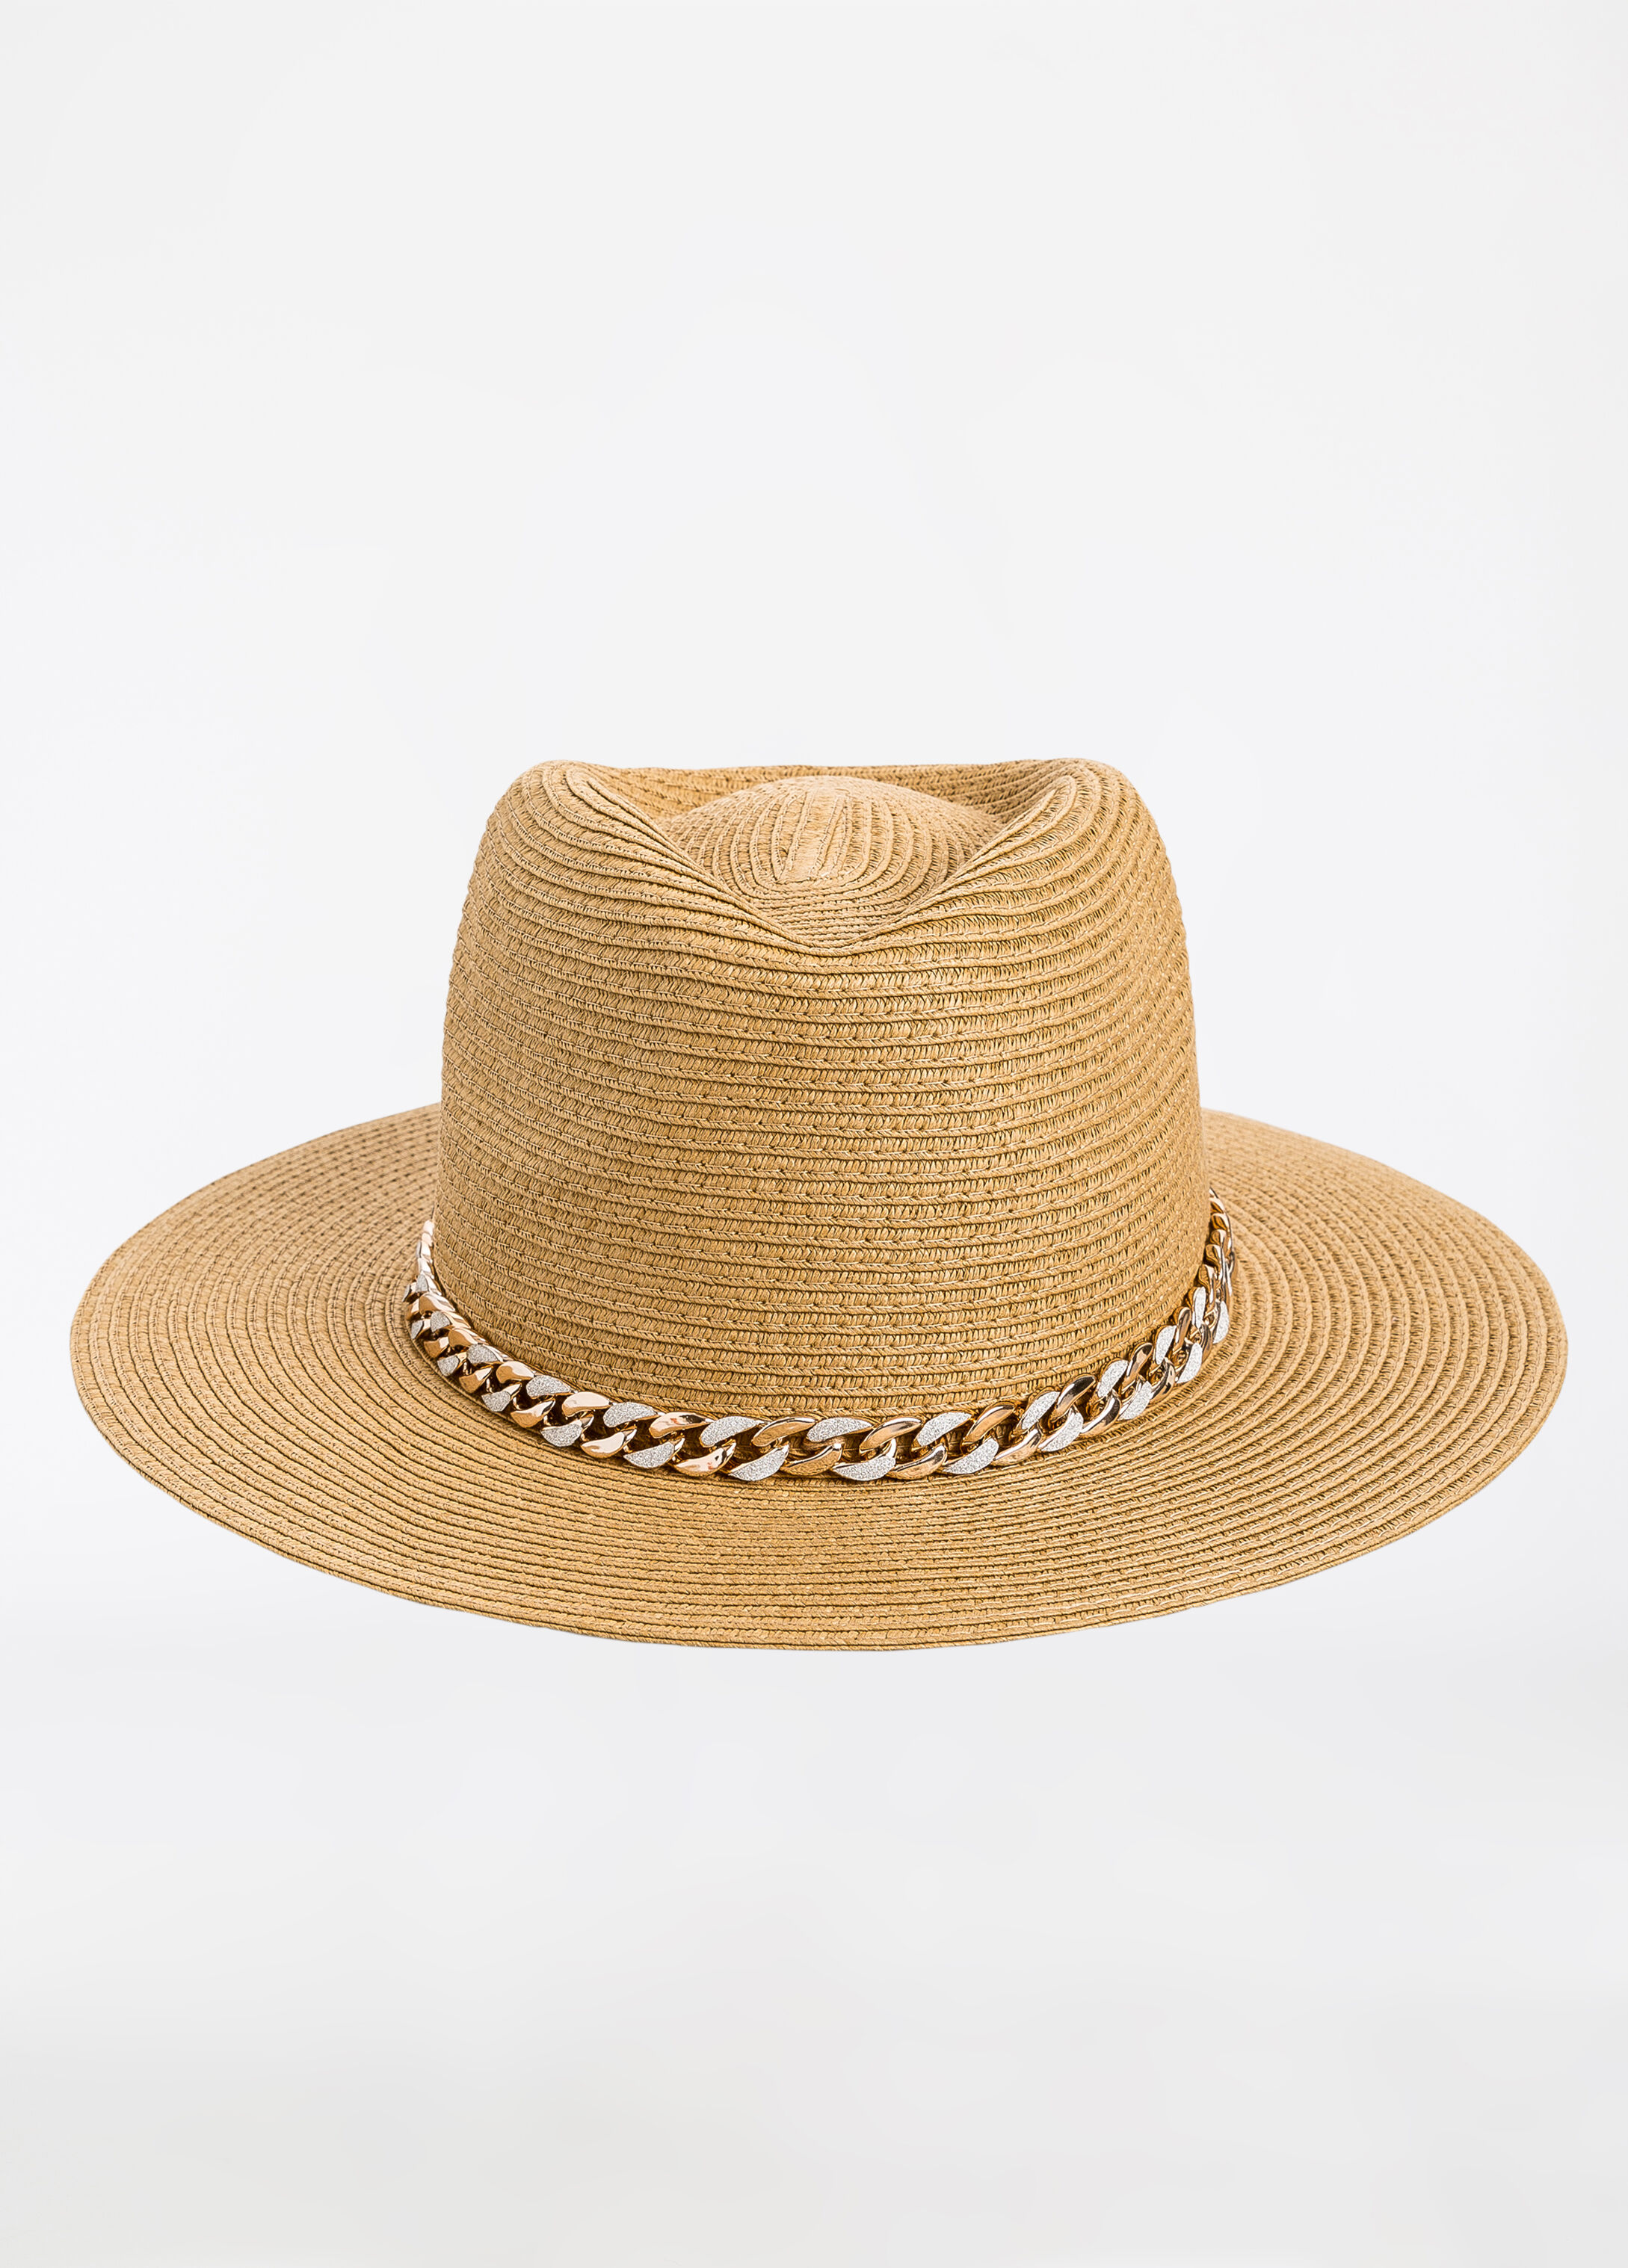 Woven Panama Hat with Chain Natural - Clearance